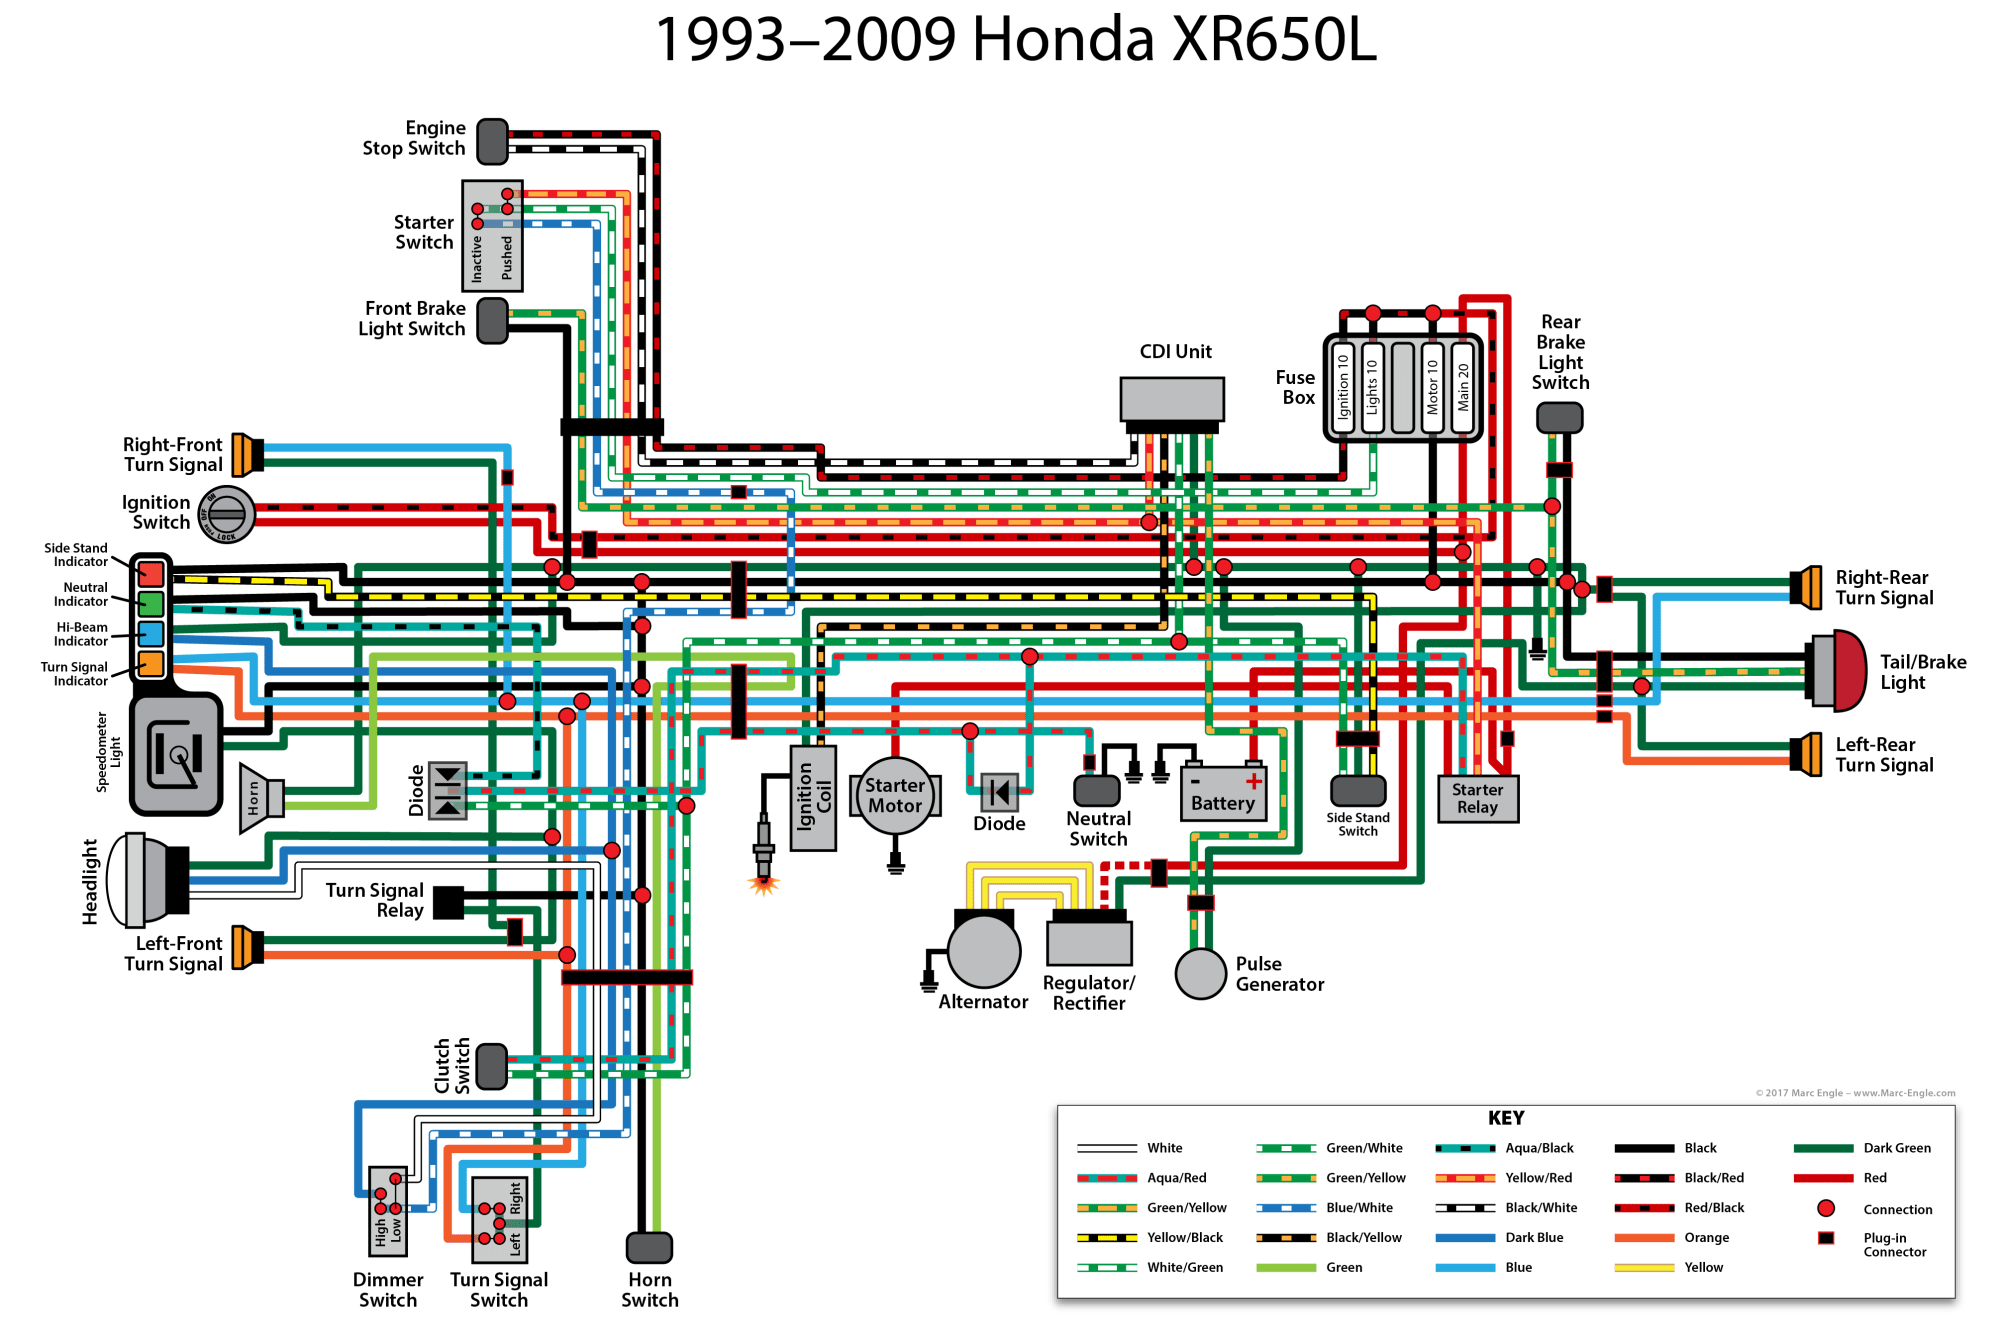 hight resolution of honda xr650l wiring diagram wiring diagram honda xr650l wiring diagram